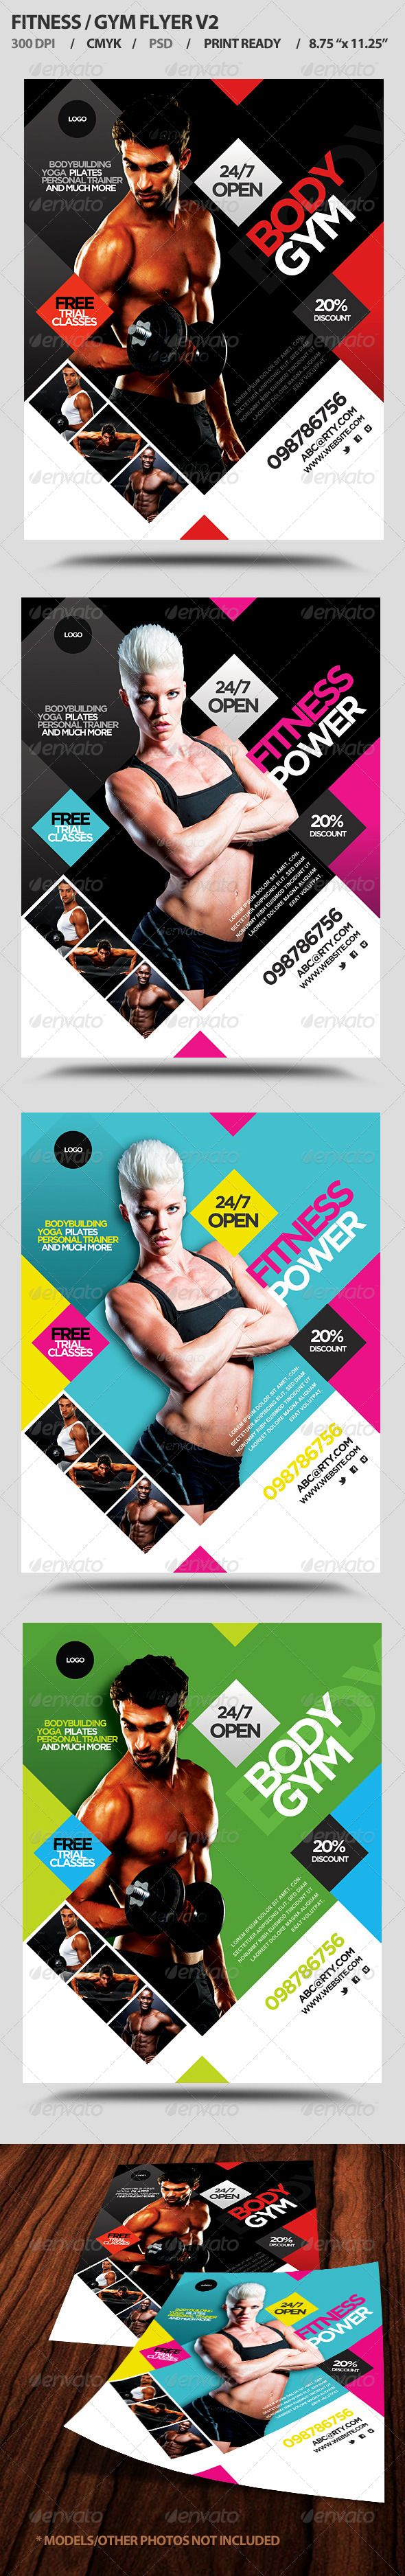 fitness gym business promotion flyer v2 flyers design fitness gym business promotion flyer v2 flyers